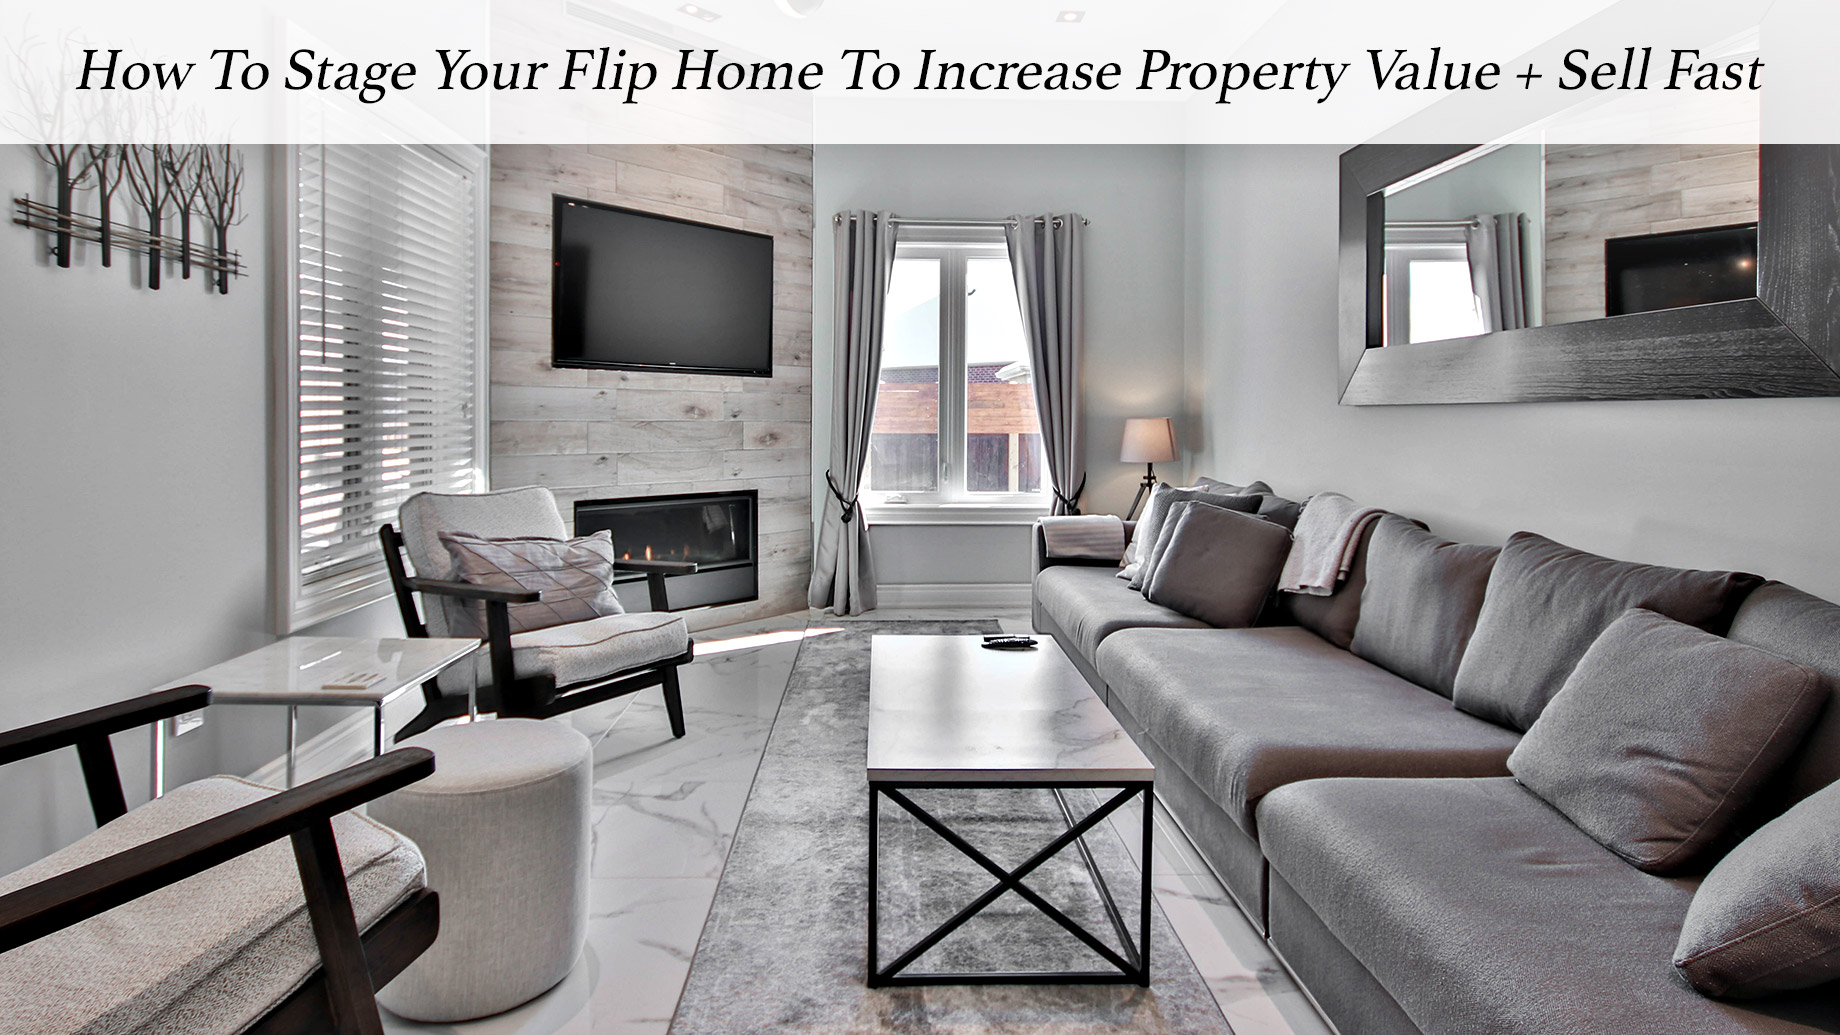 How To Stage Your Flip Home To Increase Property Value + Sell Fast